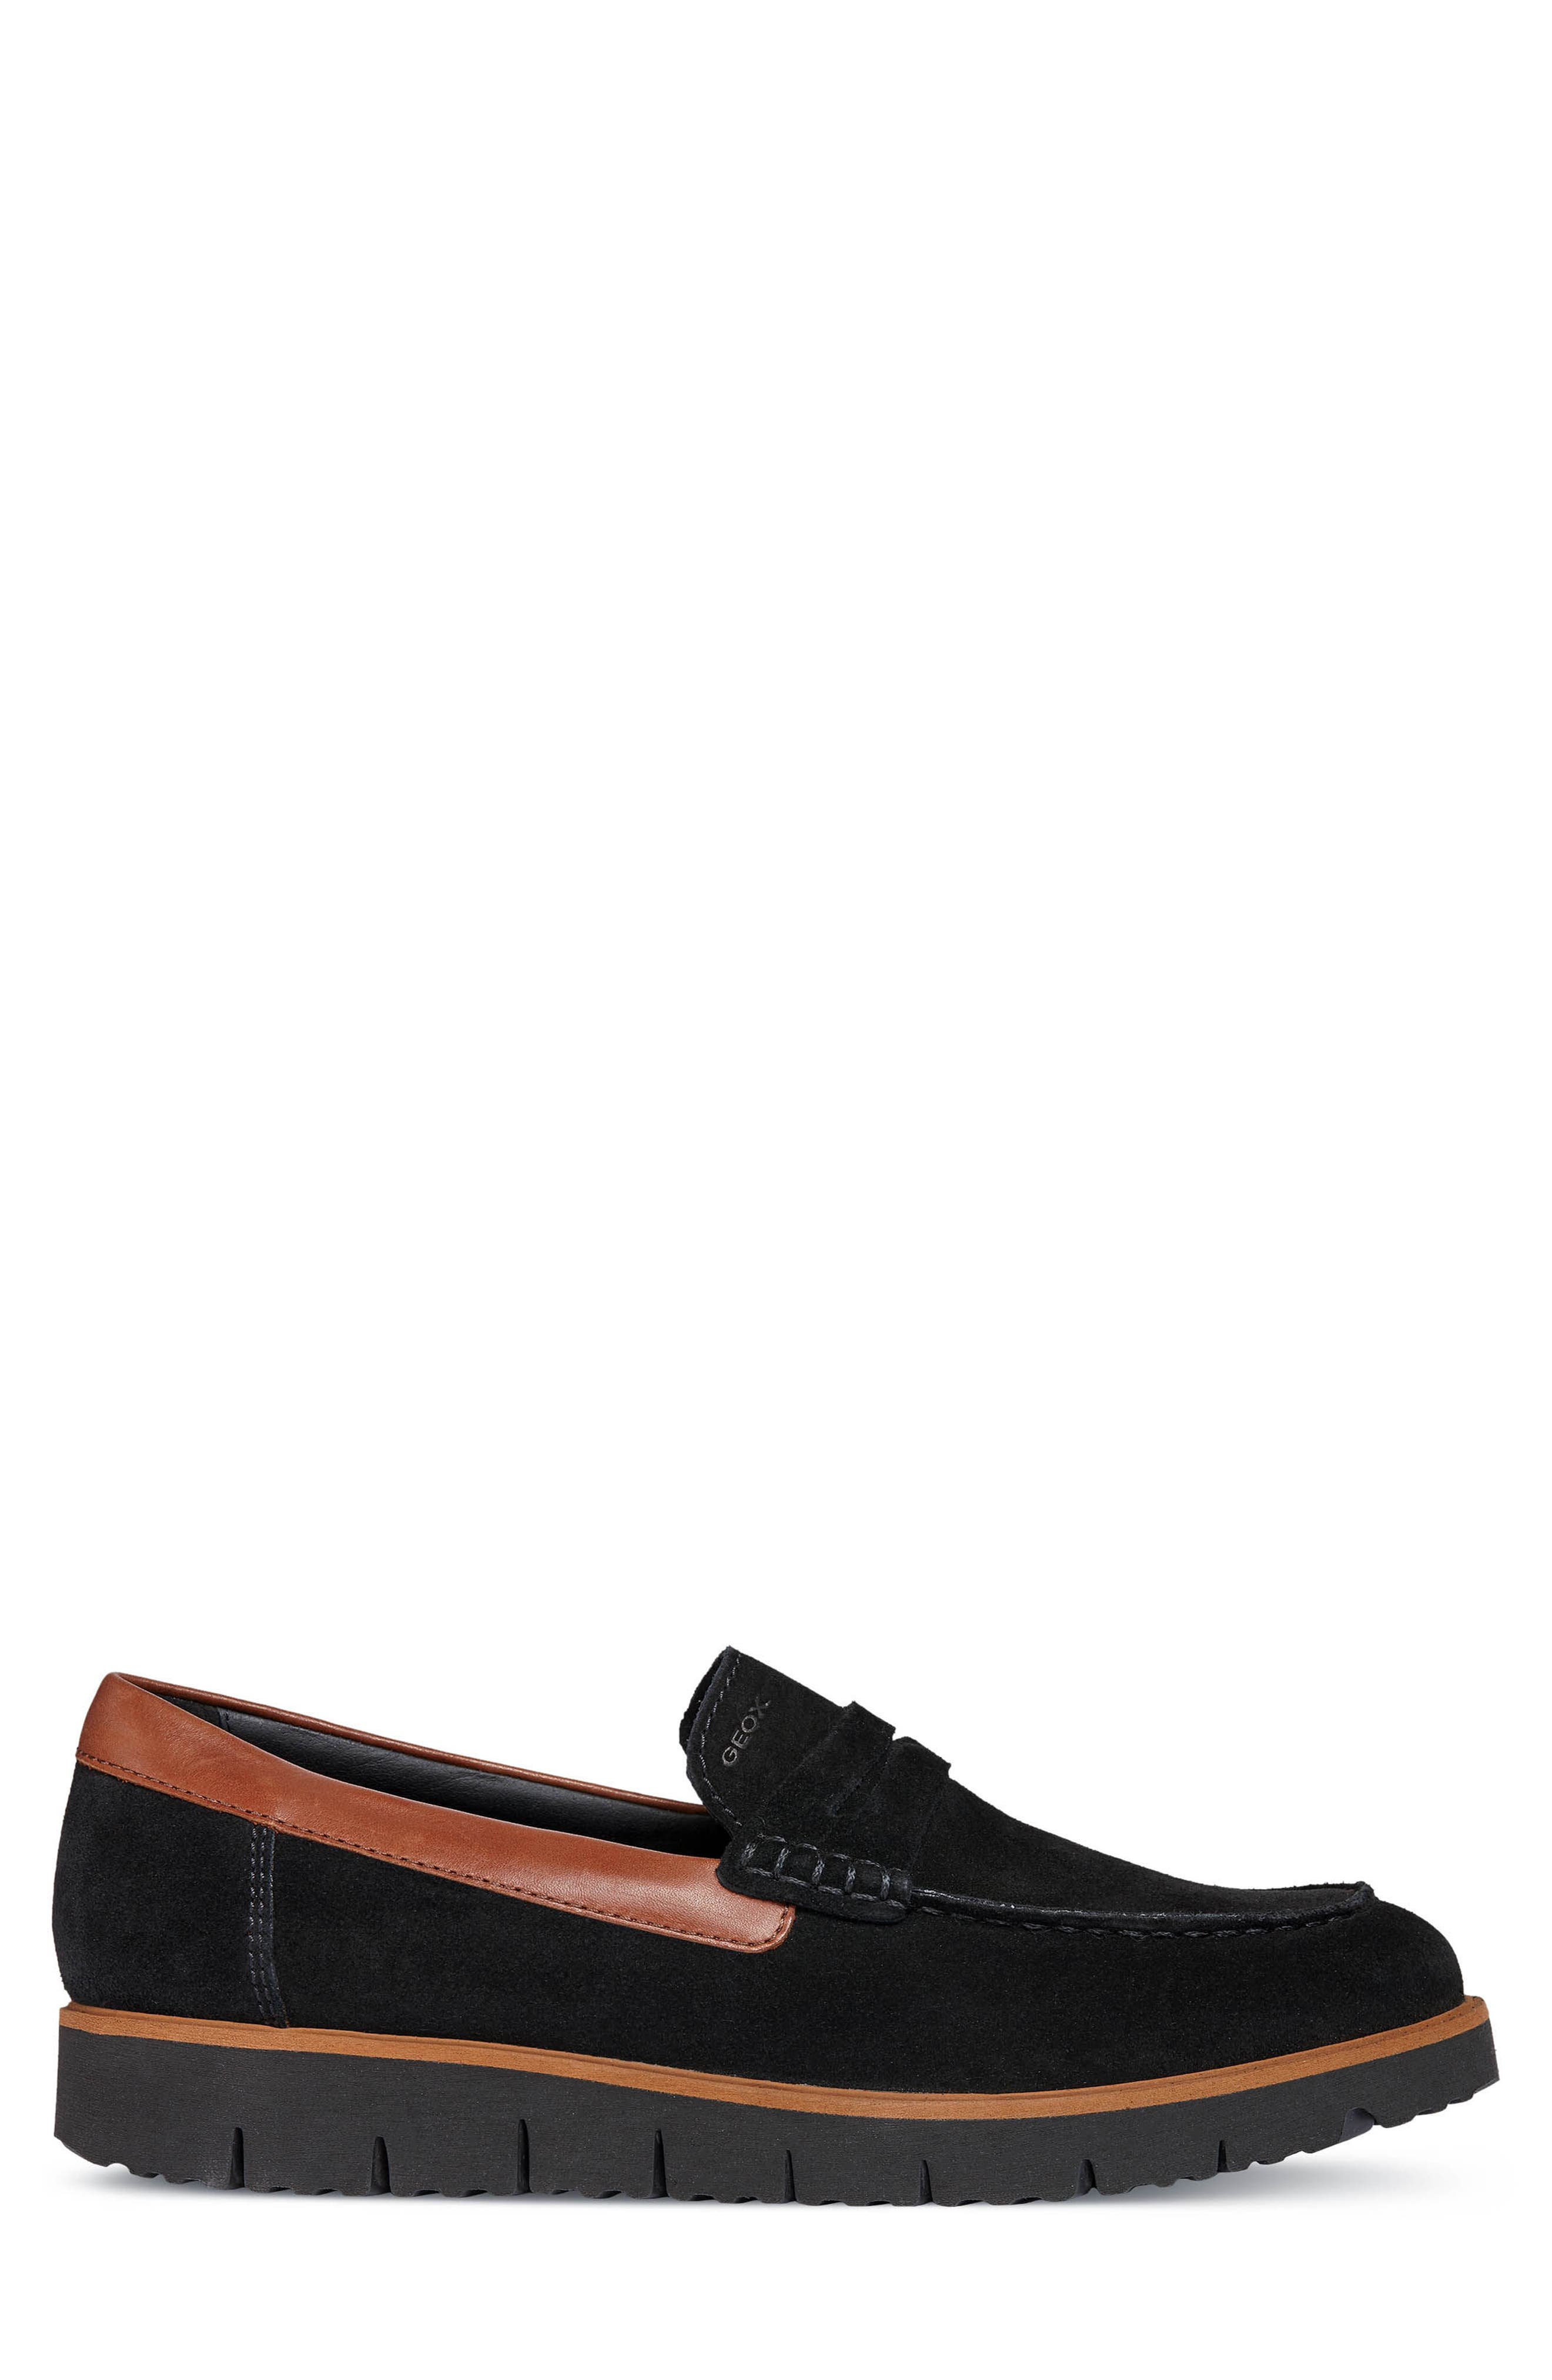 New Pluges 6 Penny Loafer,                             Alternate thumbnail 3, color,                             BLACK/ BROWN LEATHER